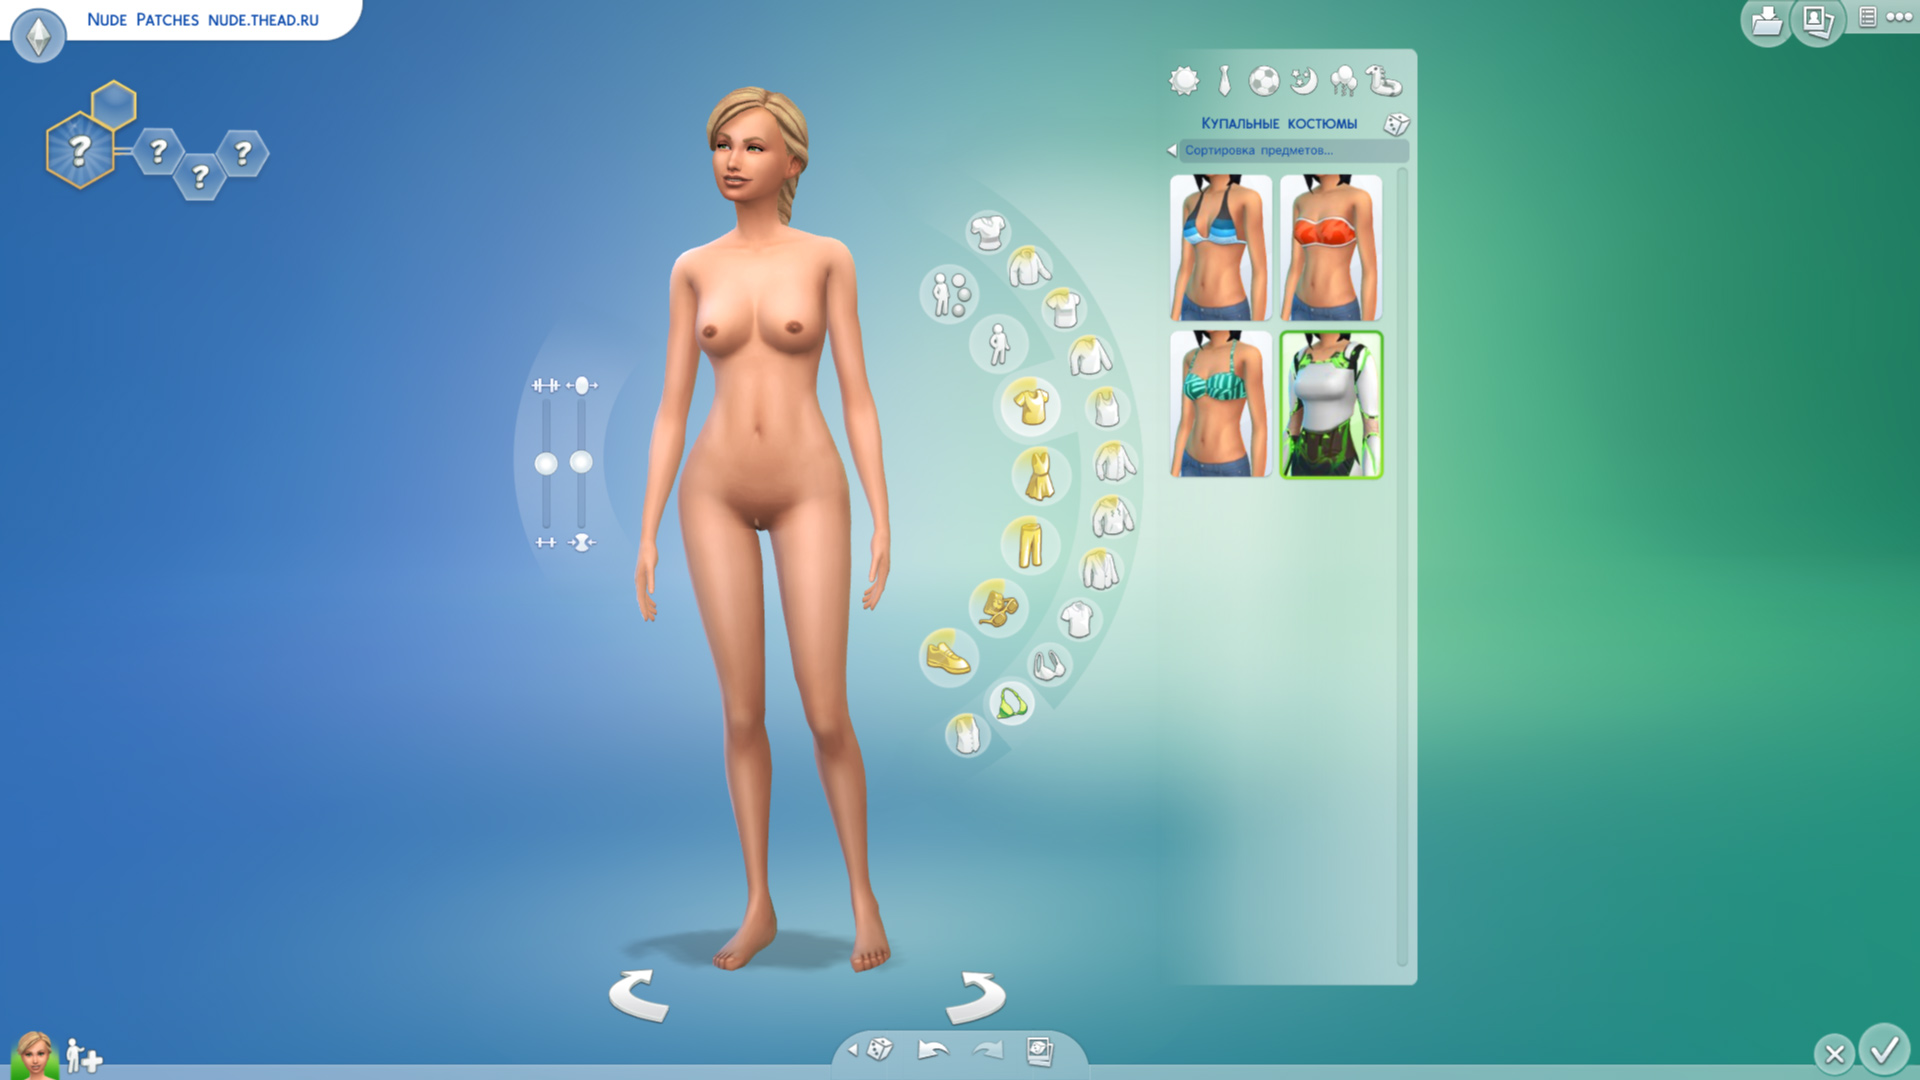 The sims nude patch download hardcore pornstar